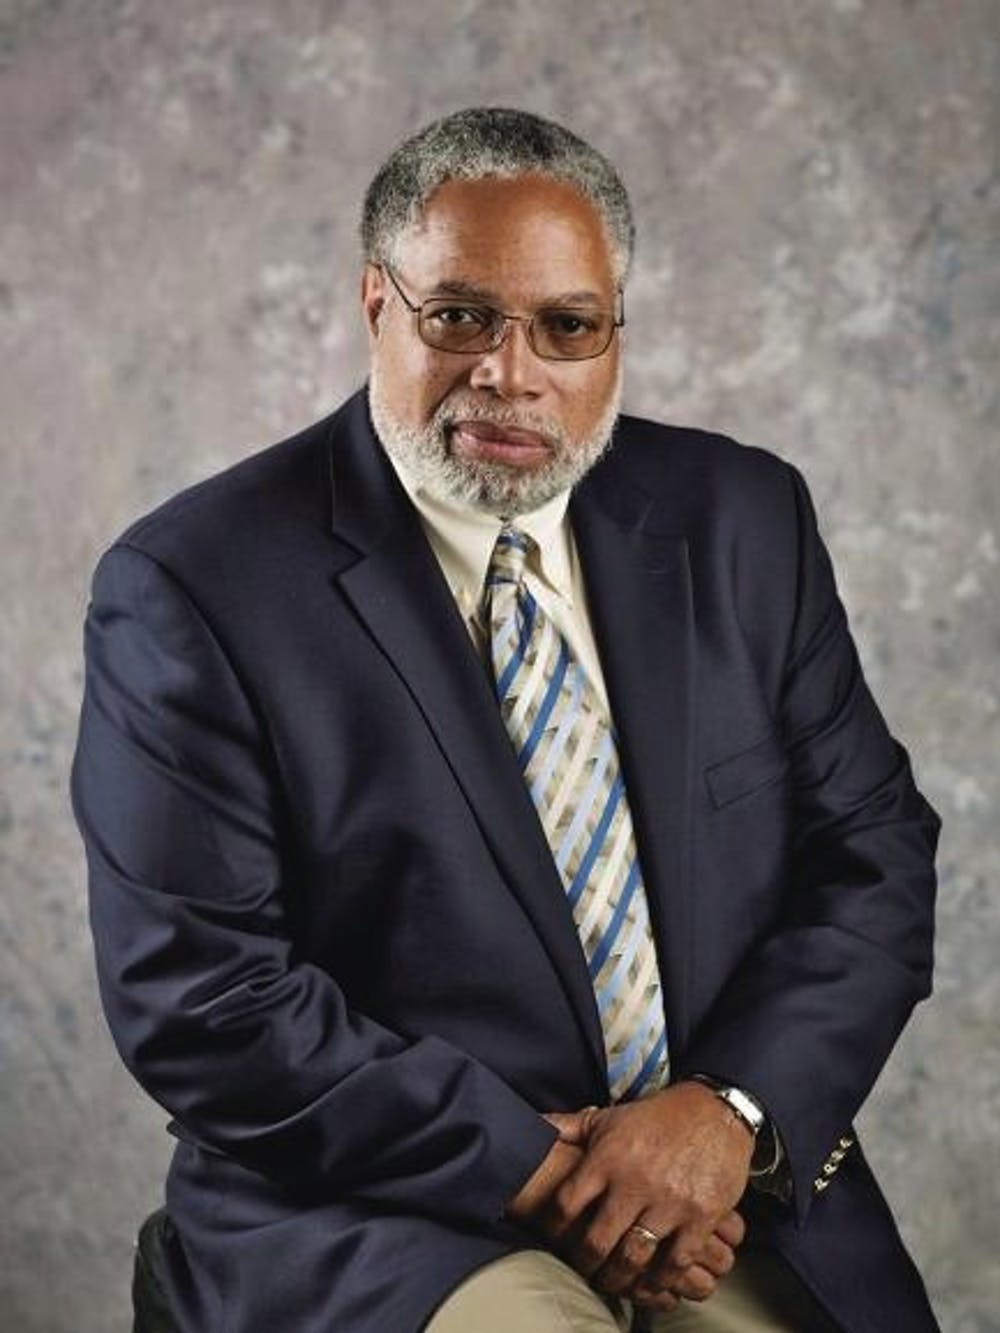 Lonnie Bunch, AU alum and Smithsonian secretary, works to capture tumultuous time in US history